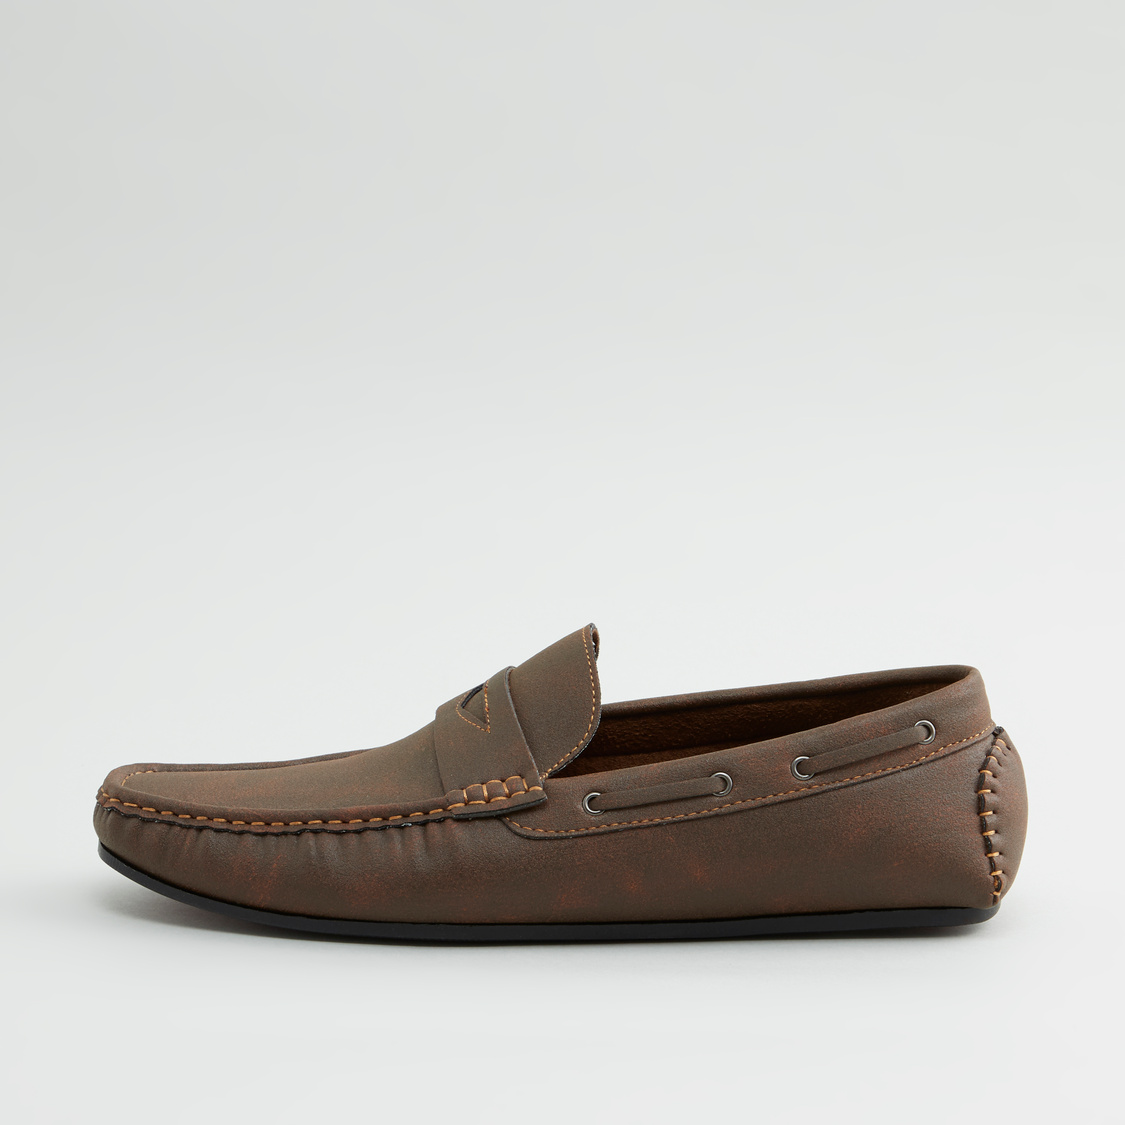 Stitch Detail Loafers